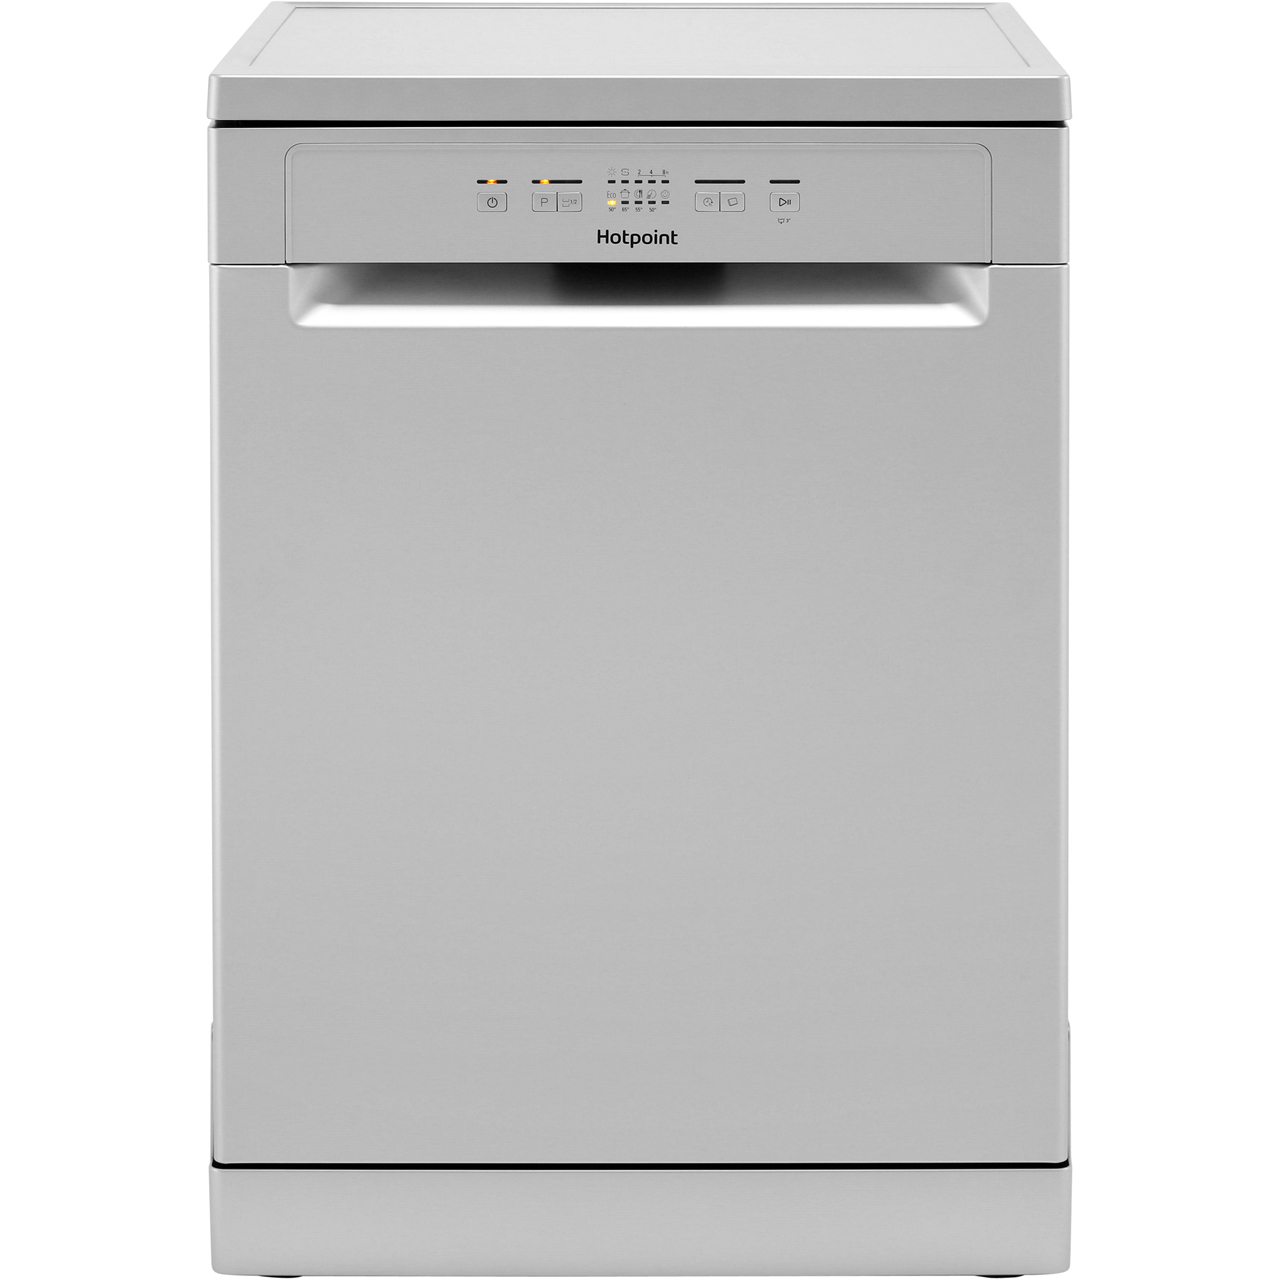 Hotpoint Hfc 2b+26 X Hotpoint Hfc2b19sv A 43 Dishwasher Full Size 60cm 13 Place